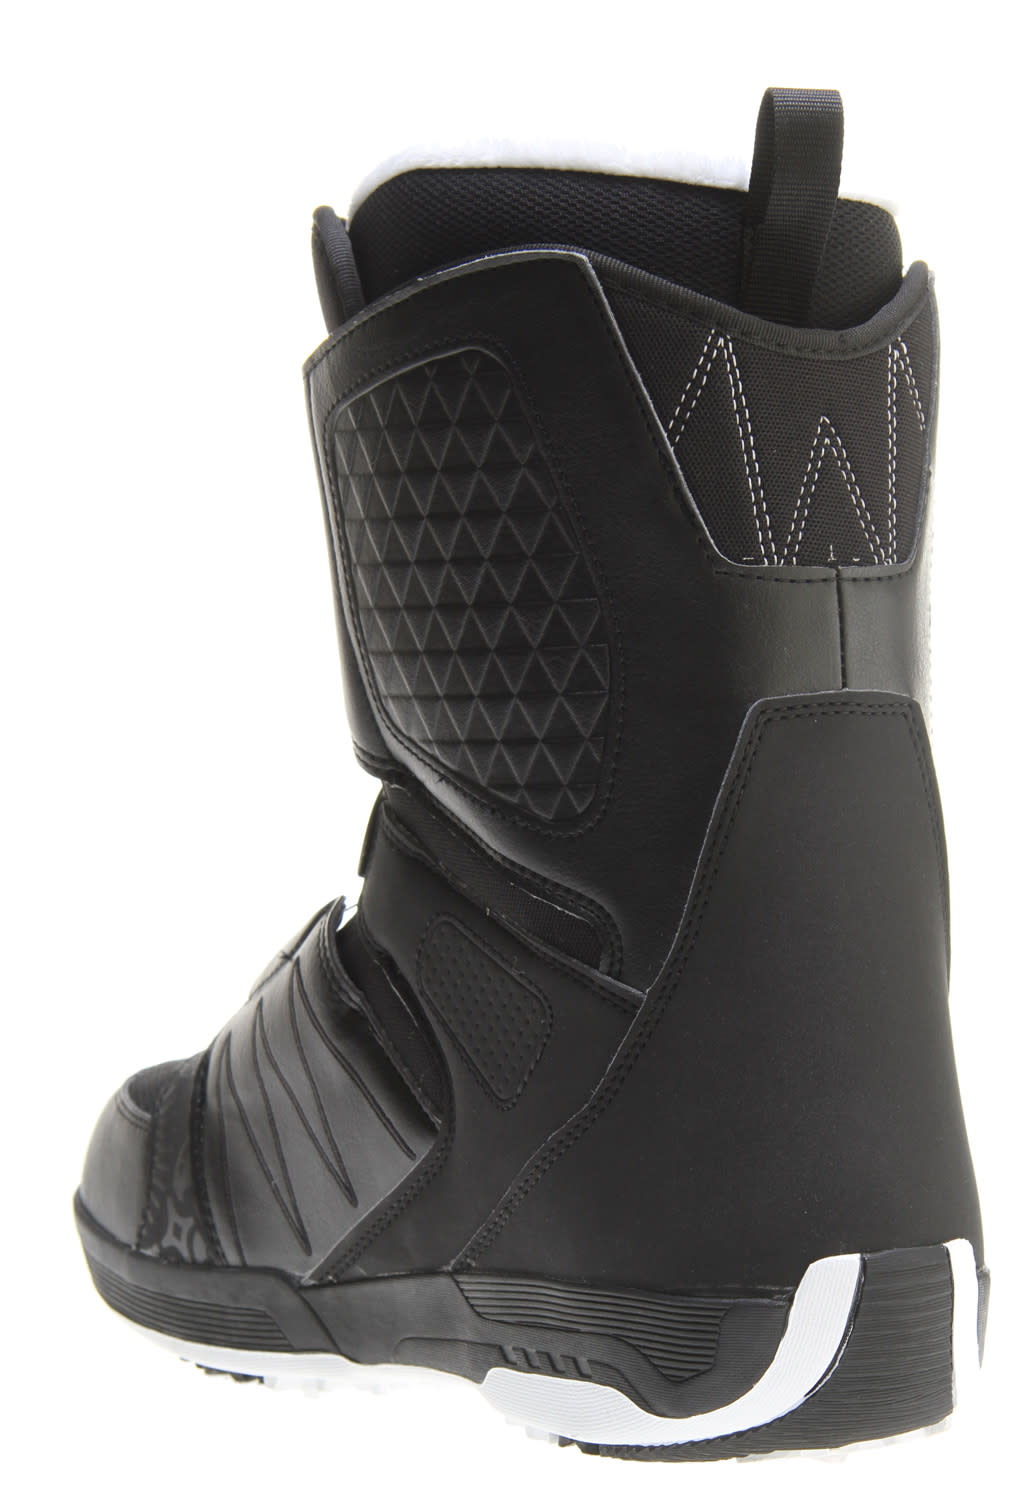 couponcodes promotiecode outlet te koop Salomon Faction BOA Snowboard Boots